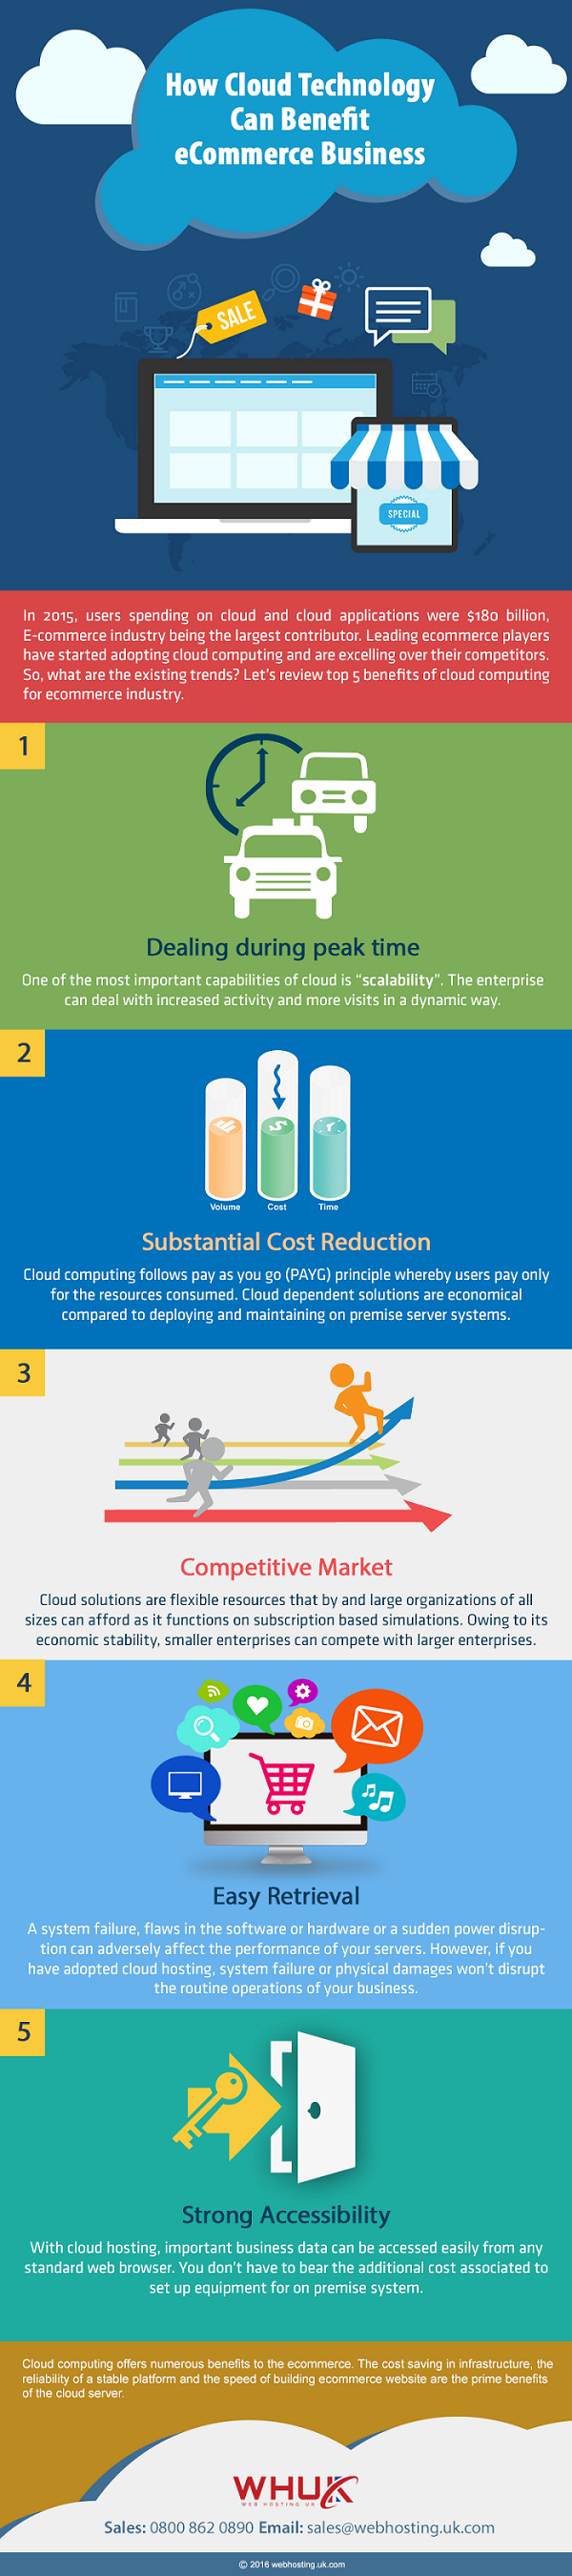 [Image: How-Cloud-Technology-Can-Benefit-eCommer...ness-1.png]